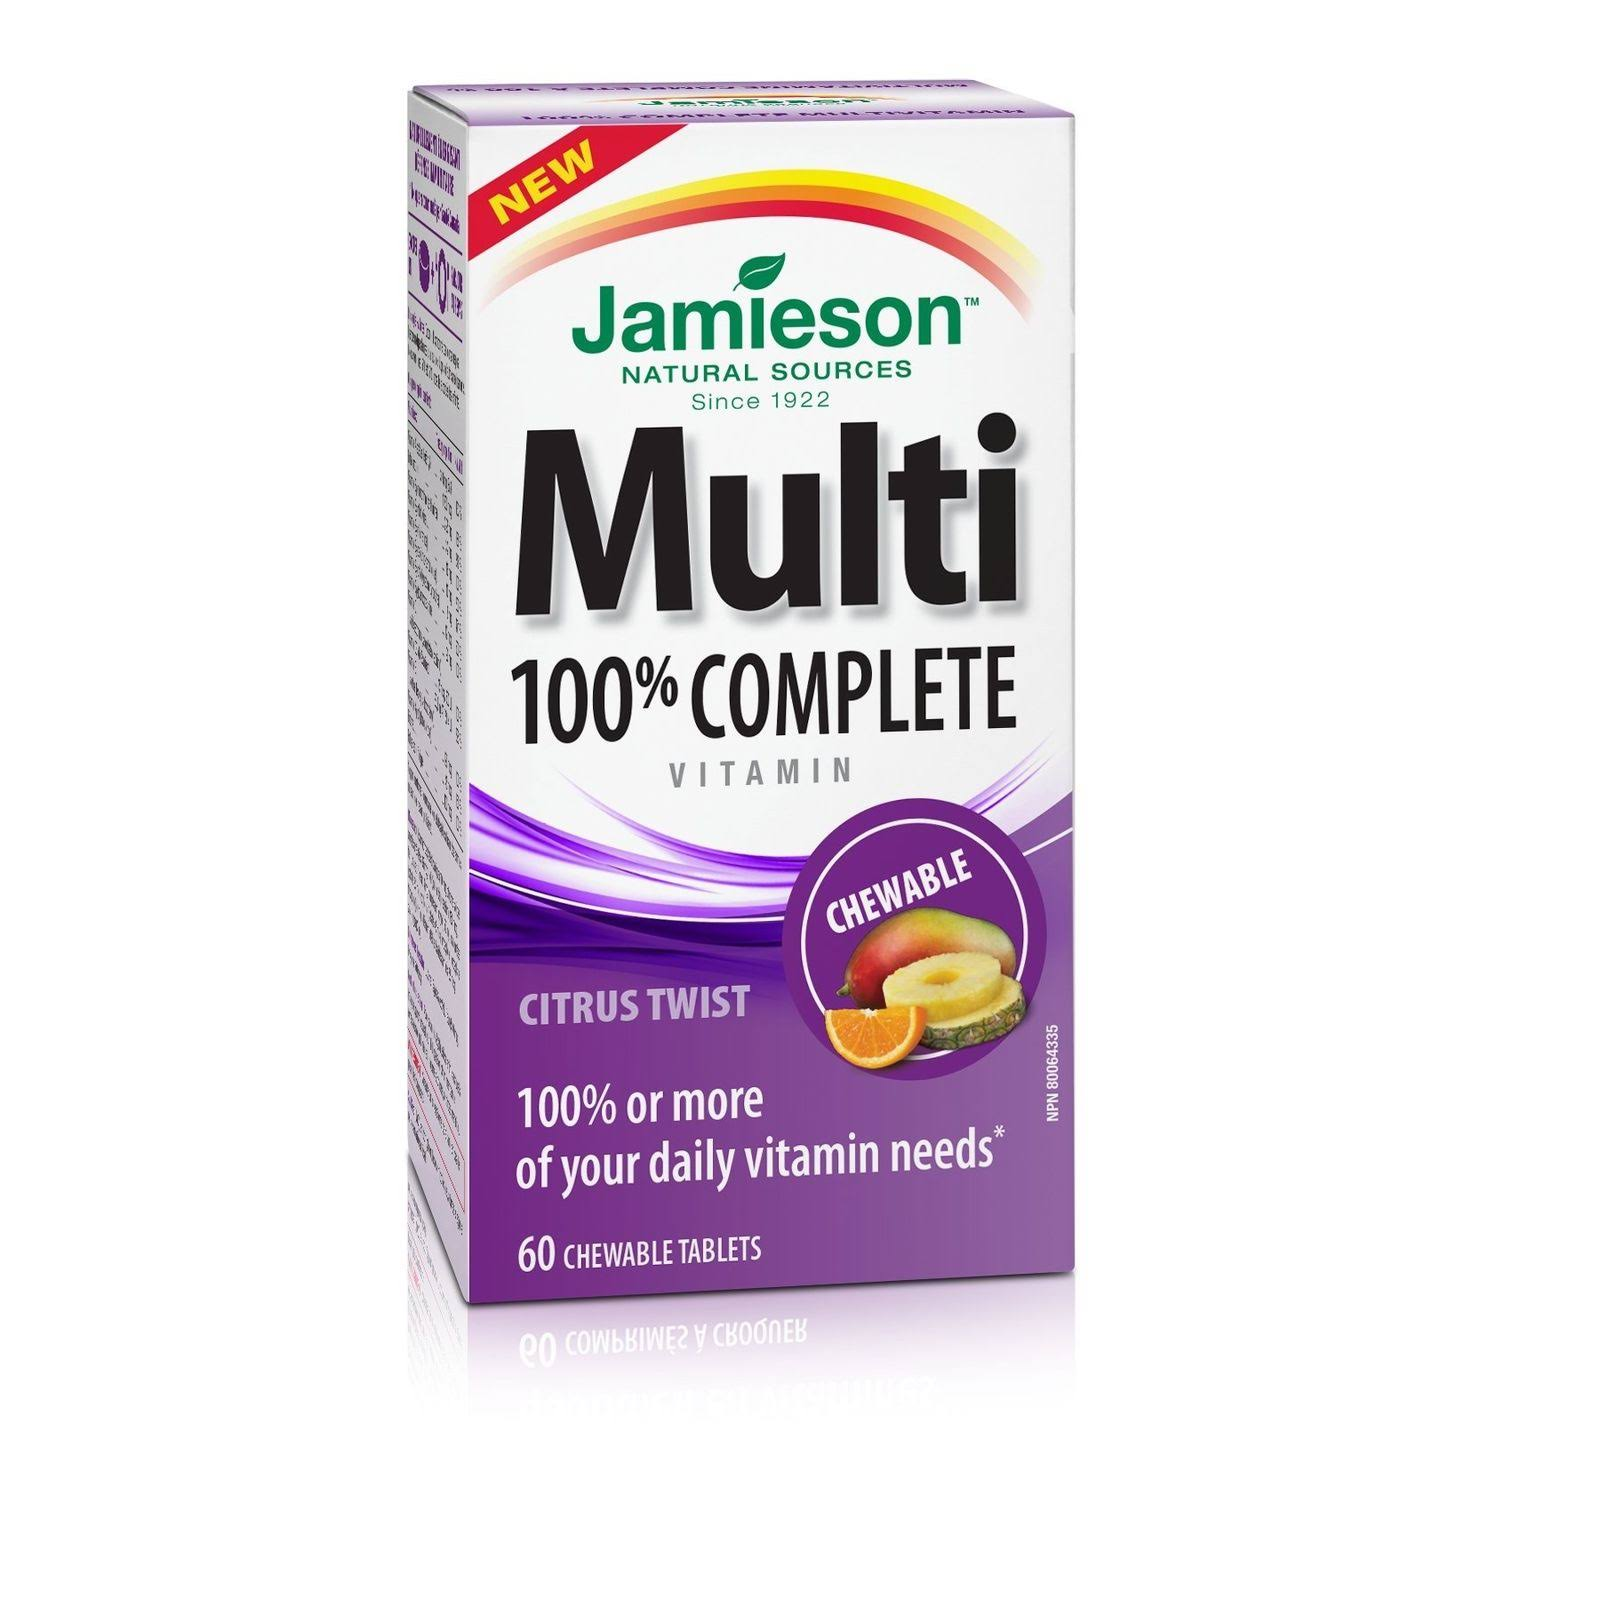 Jamieson Adult Chewable Multivitamin Supplements - 60ct